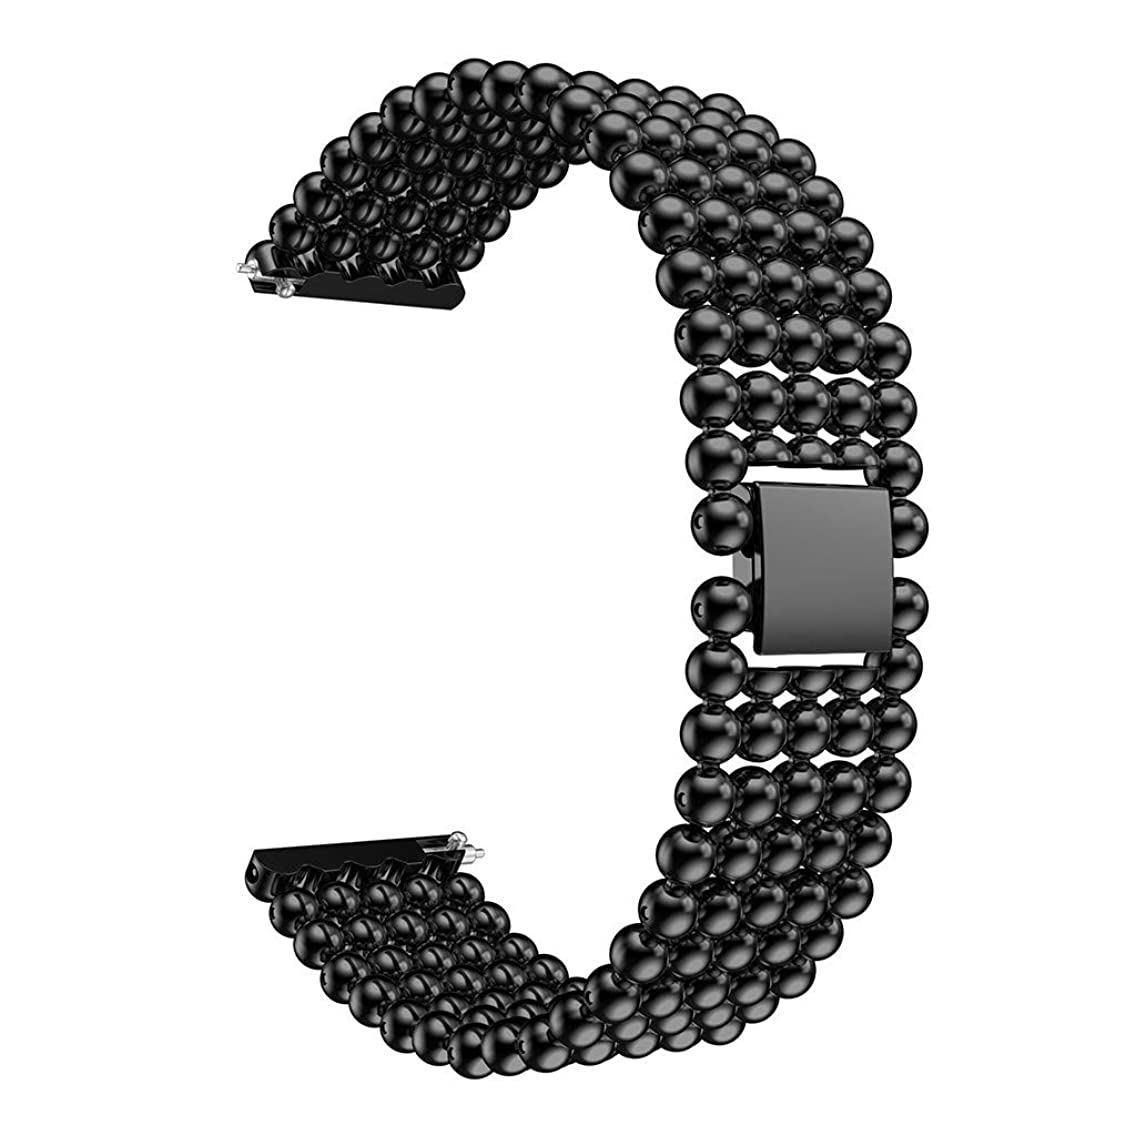 Jessie storee Five Beads Round Beads Alloy Watch Strap for Huawei Watch GT Womens Replacement Wirstband Aluminium Alloy Band for Women Replacement Strap for Men (Black)